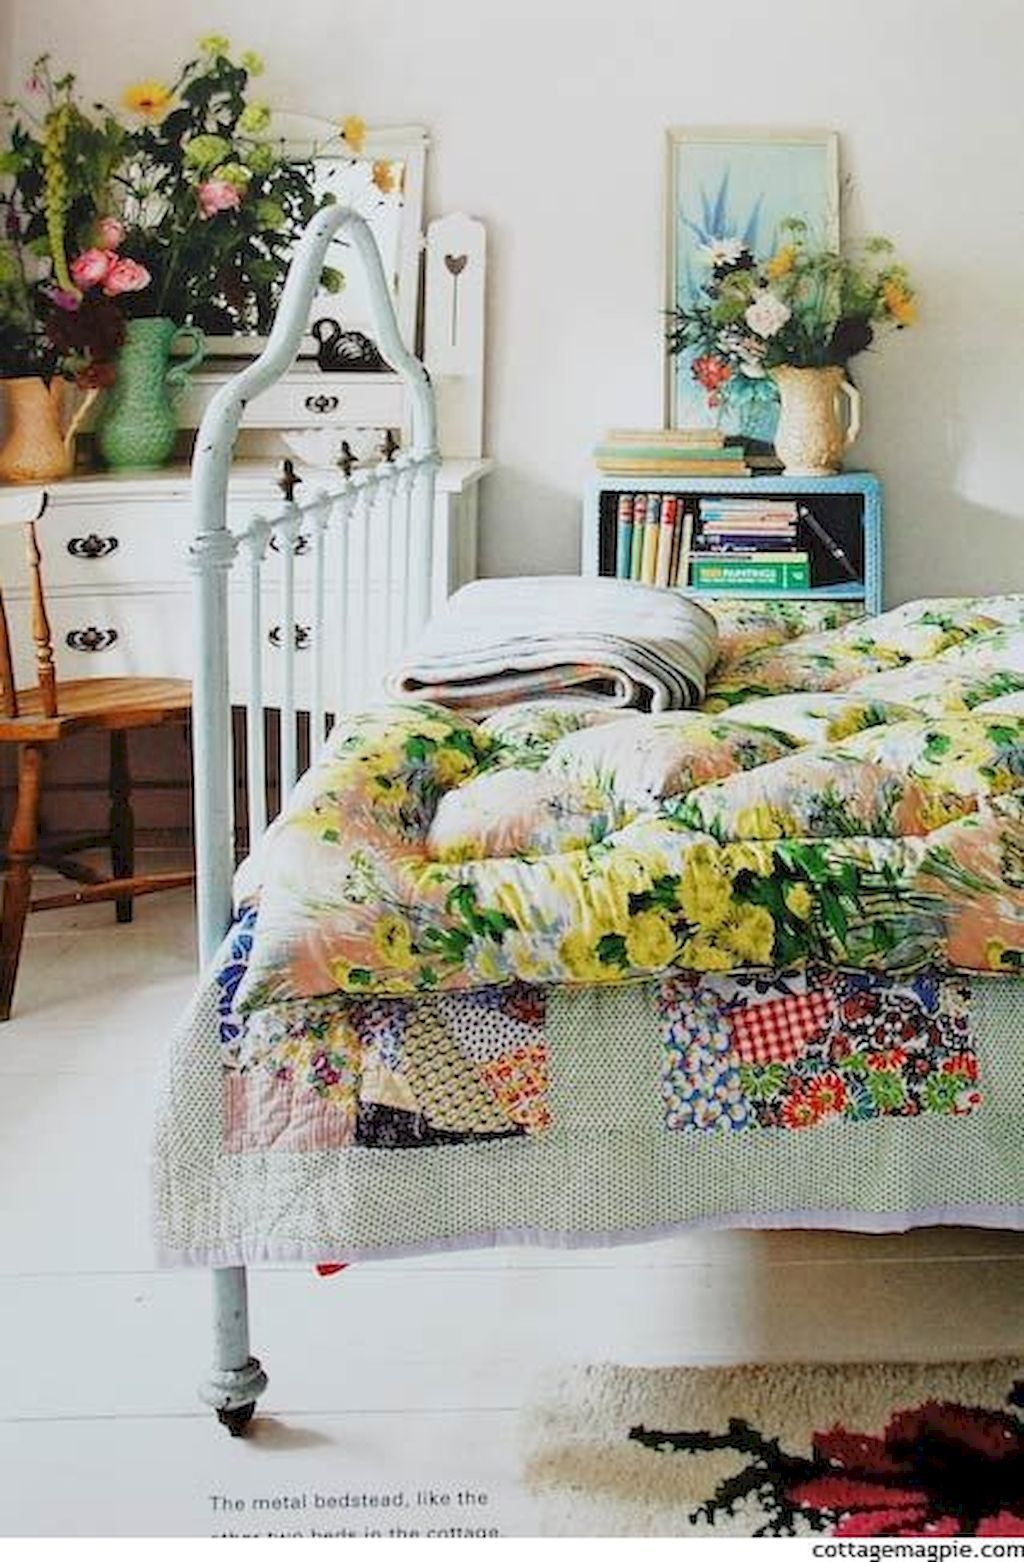 60 Eclectic Bedroom Decorating Ideas for Apartment  LivingMarch com is part of Eclectic bedroom - There's nothing wrong with a bedroom decorated in neutrals or simple white  But perhaps you've grown tired of the lack of color and are ready for something a bit more lively  Bringing color into your bedroom doesn't have to mean… Continue Reading →